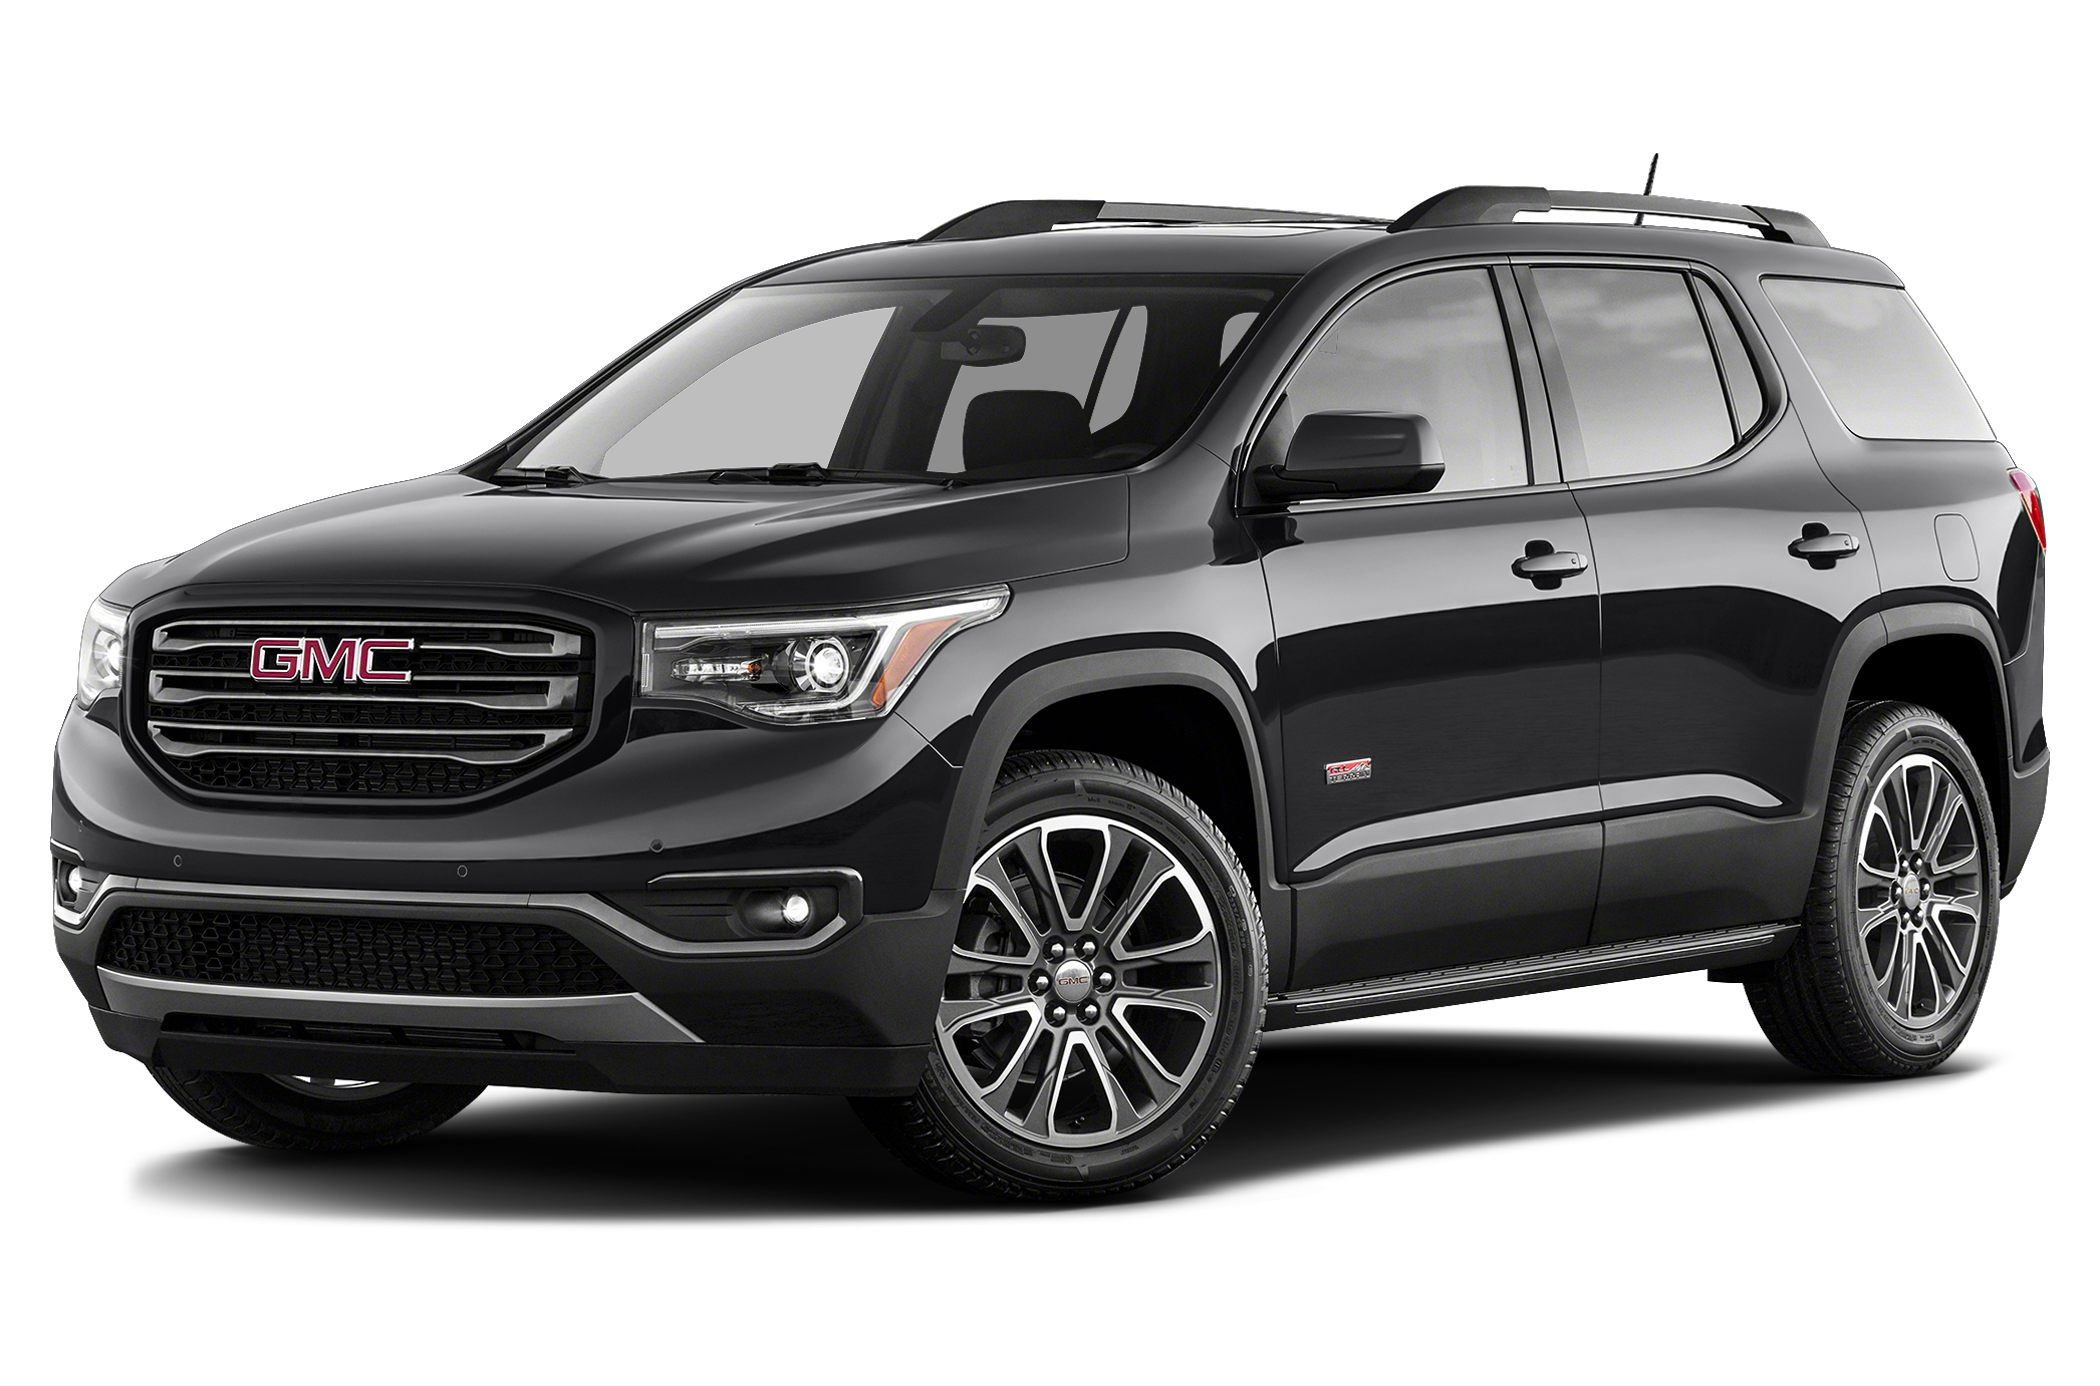 2017 GMC Acadia loses 700 pounds, gains everywhere else - Autoblog